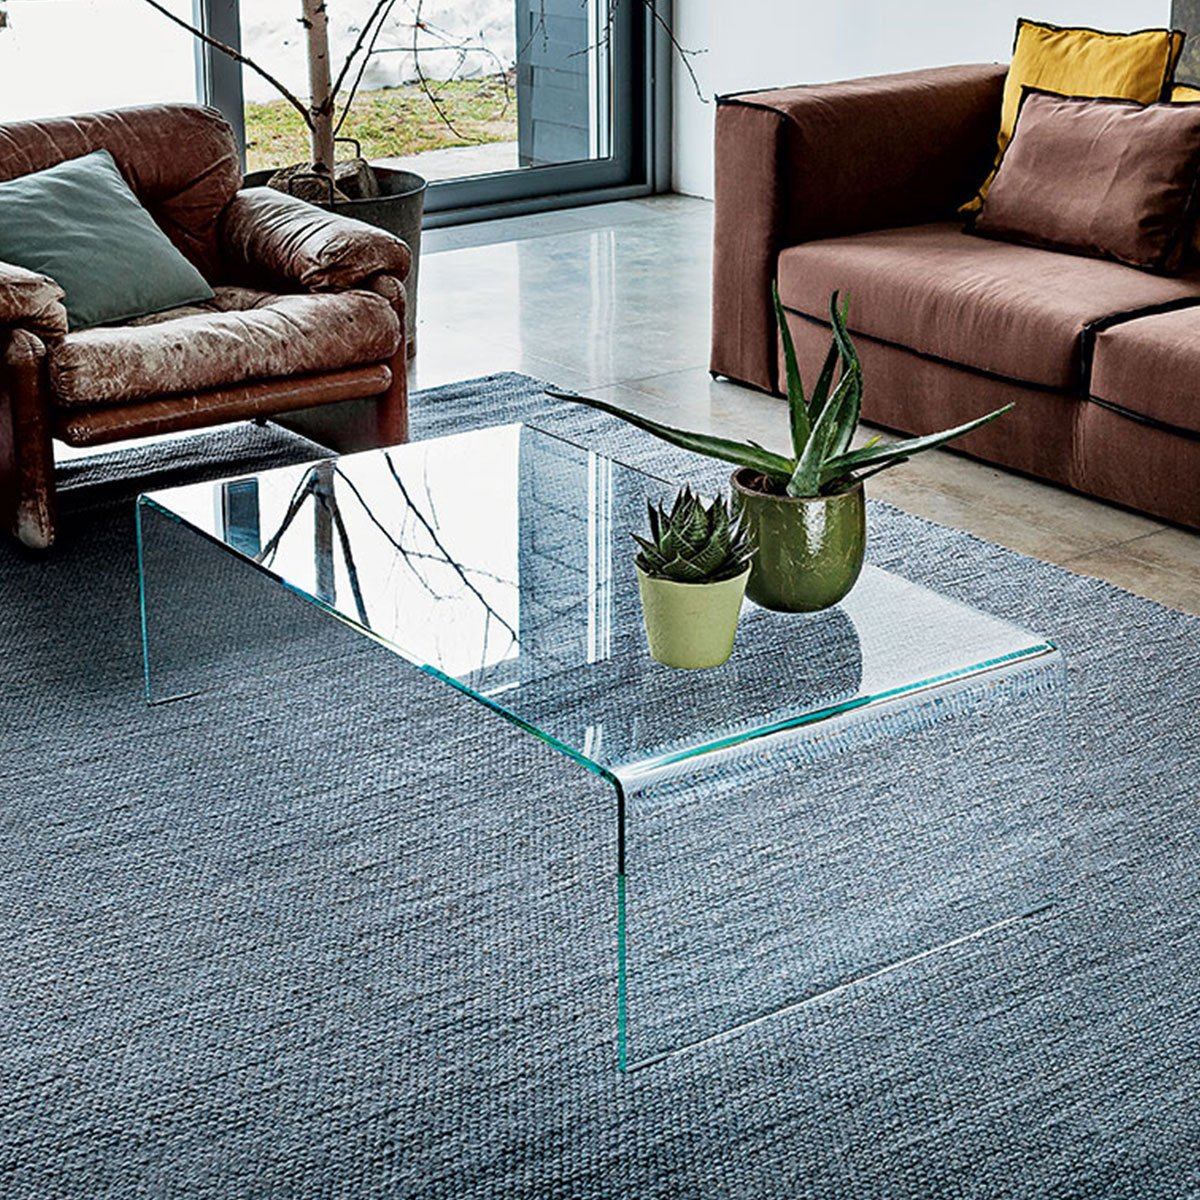 Glass Coffee Tables Furniture Village: Sovet Bridge Coffee Table